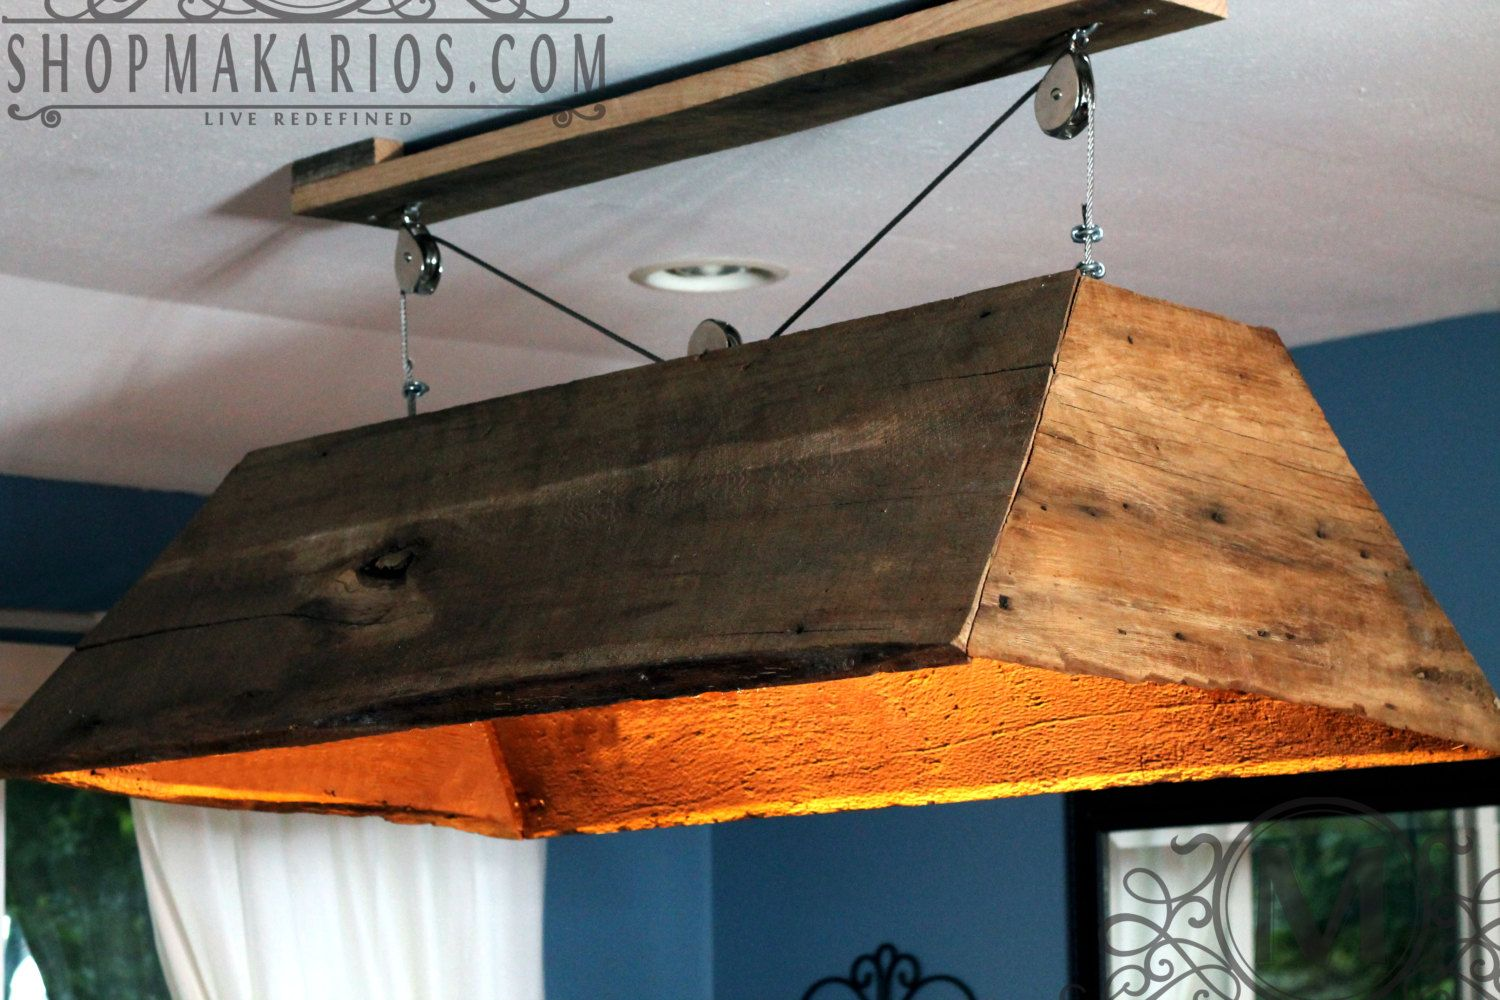 This is a one of a kind hanging light fixture made from 19th hanging barn wood light for the basement ab ove the pool table greentooth Choice Image